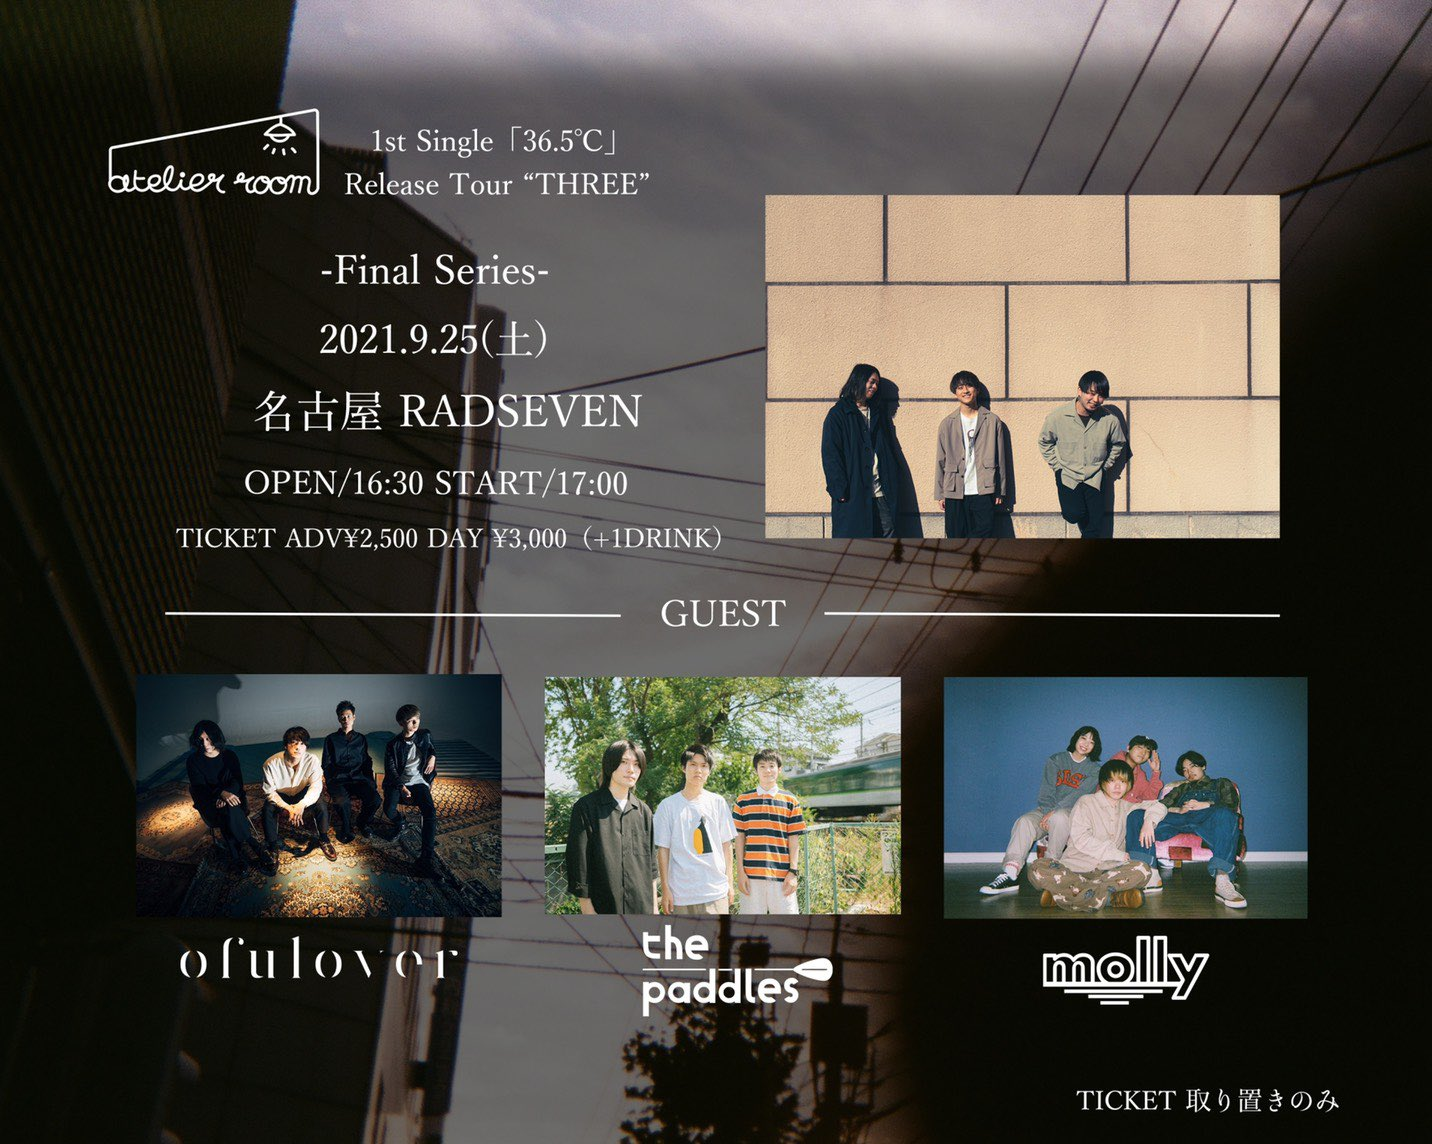 """atelier room 1st Single 「36.5℃」Release Tour """"THREE"""" Final Series 名古屋編"""